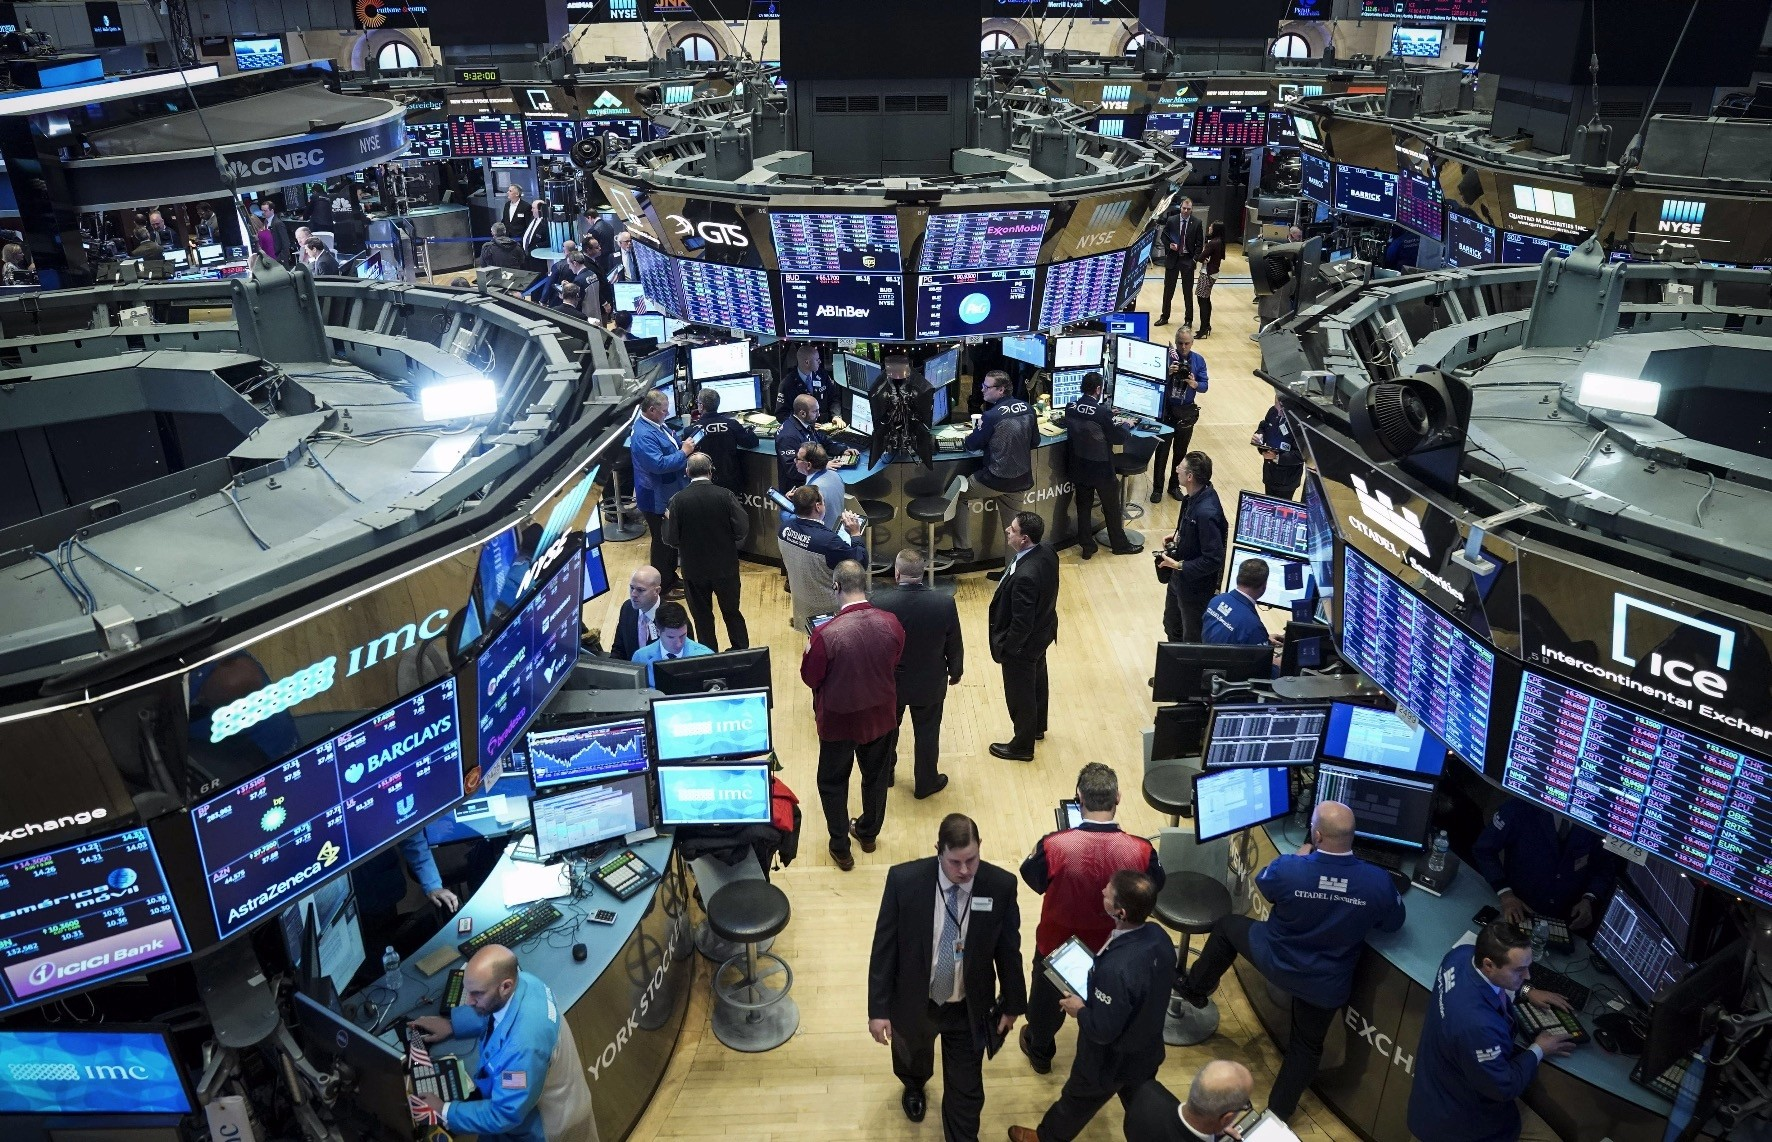 Traders and financial professionals work at the opening bell on the floor of the New York Stock Exchange, New York City, Jan. 2.